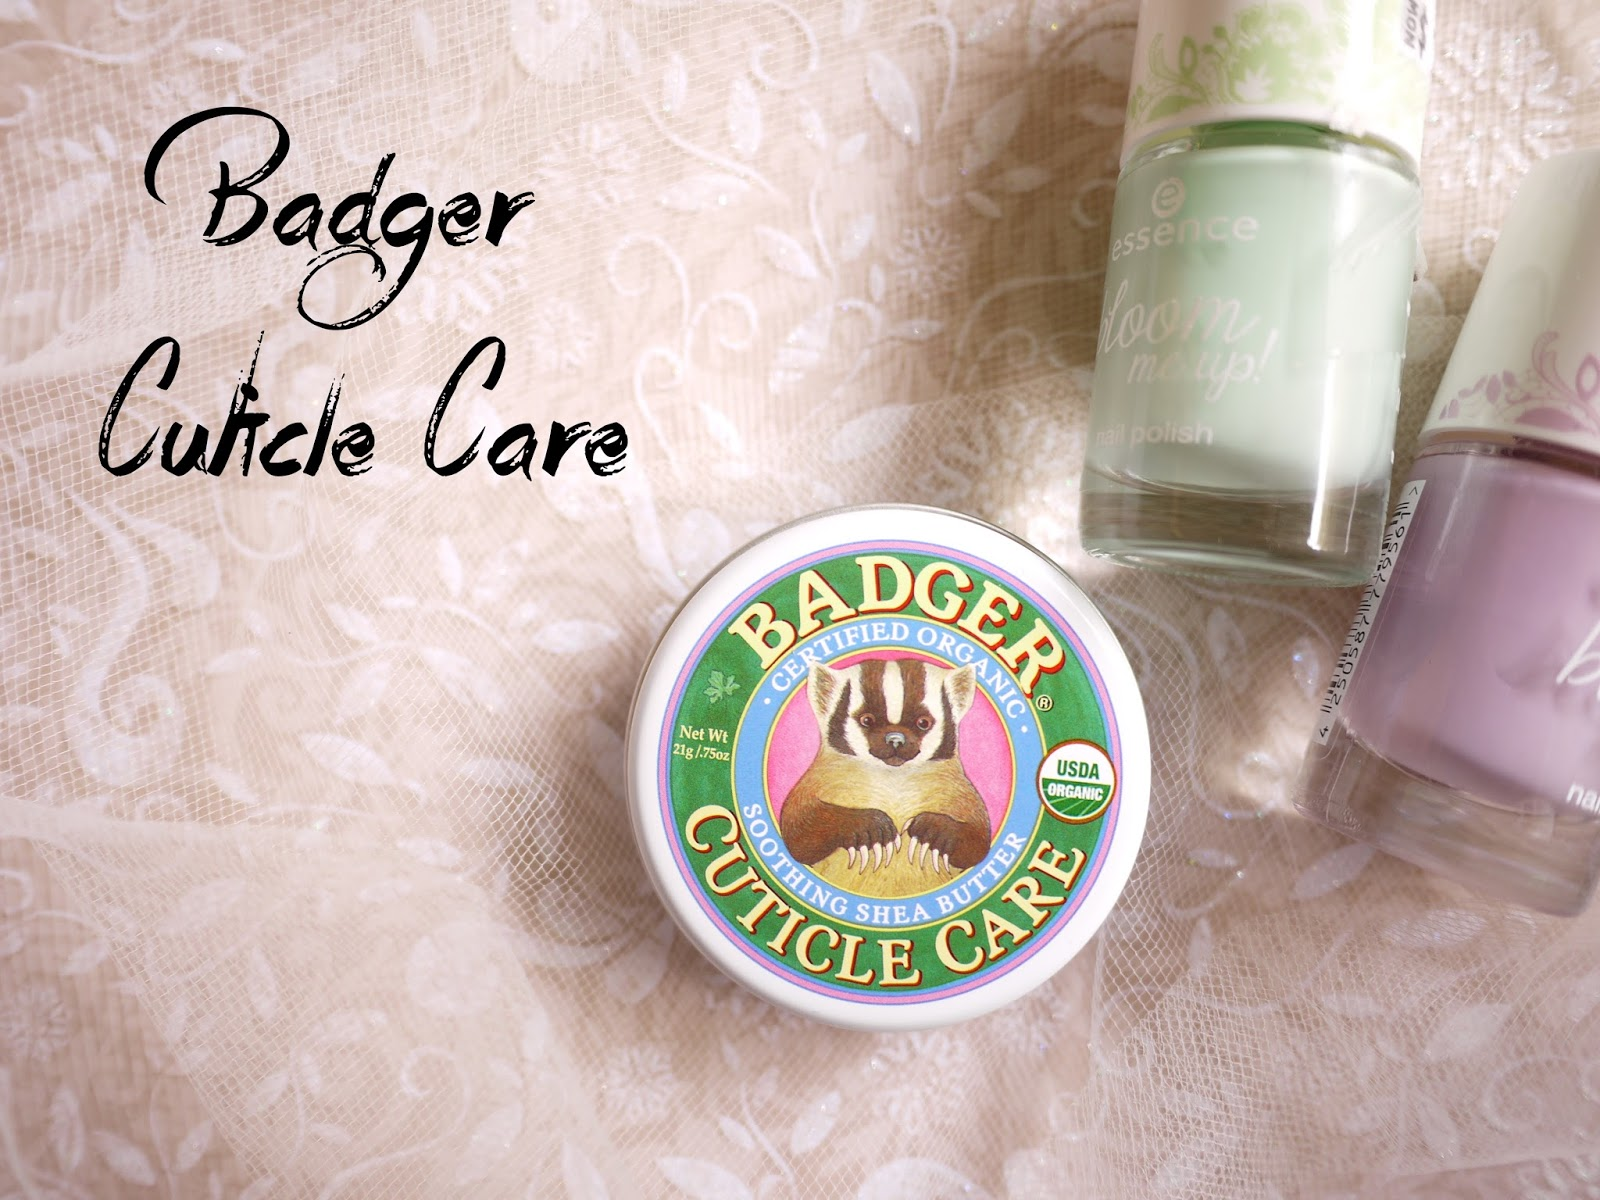 badger cuticle care review